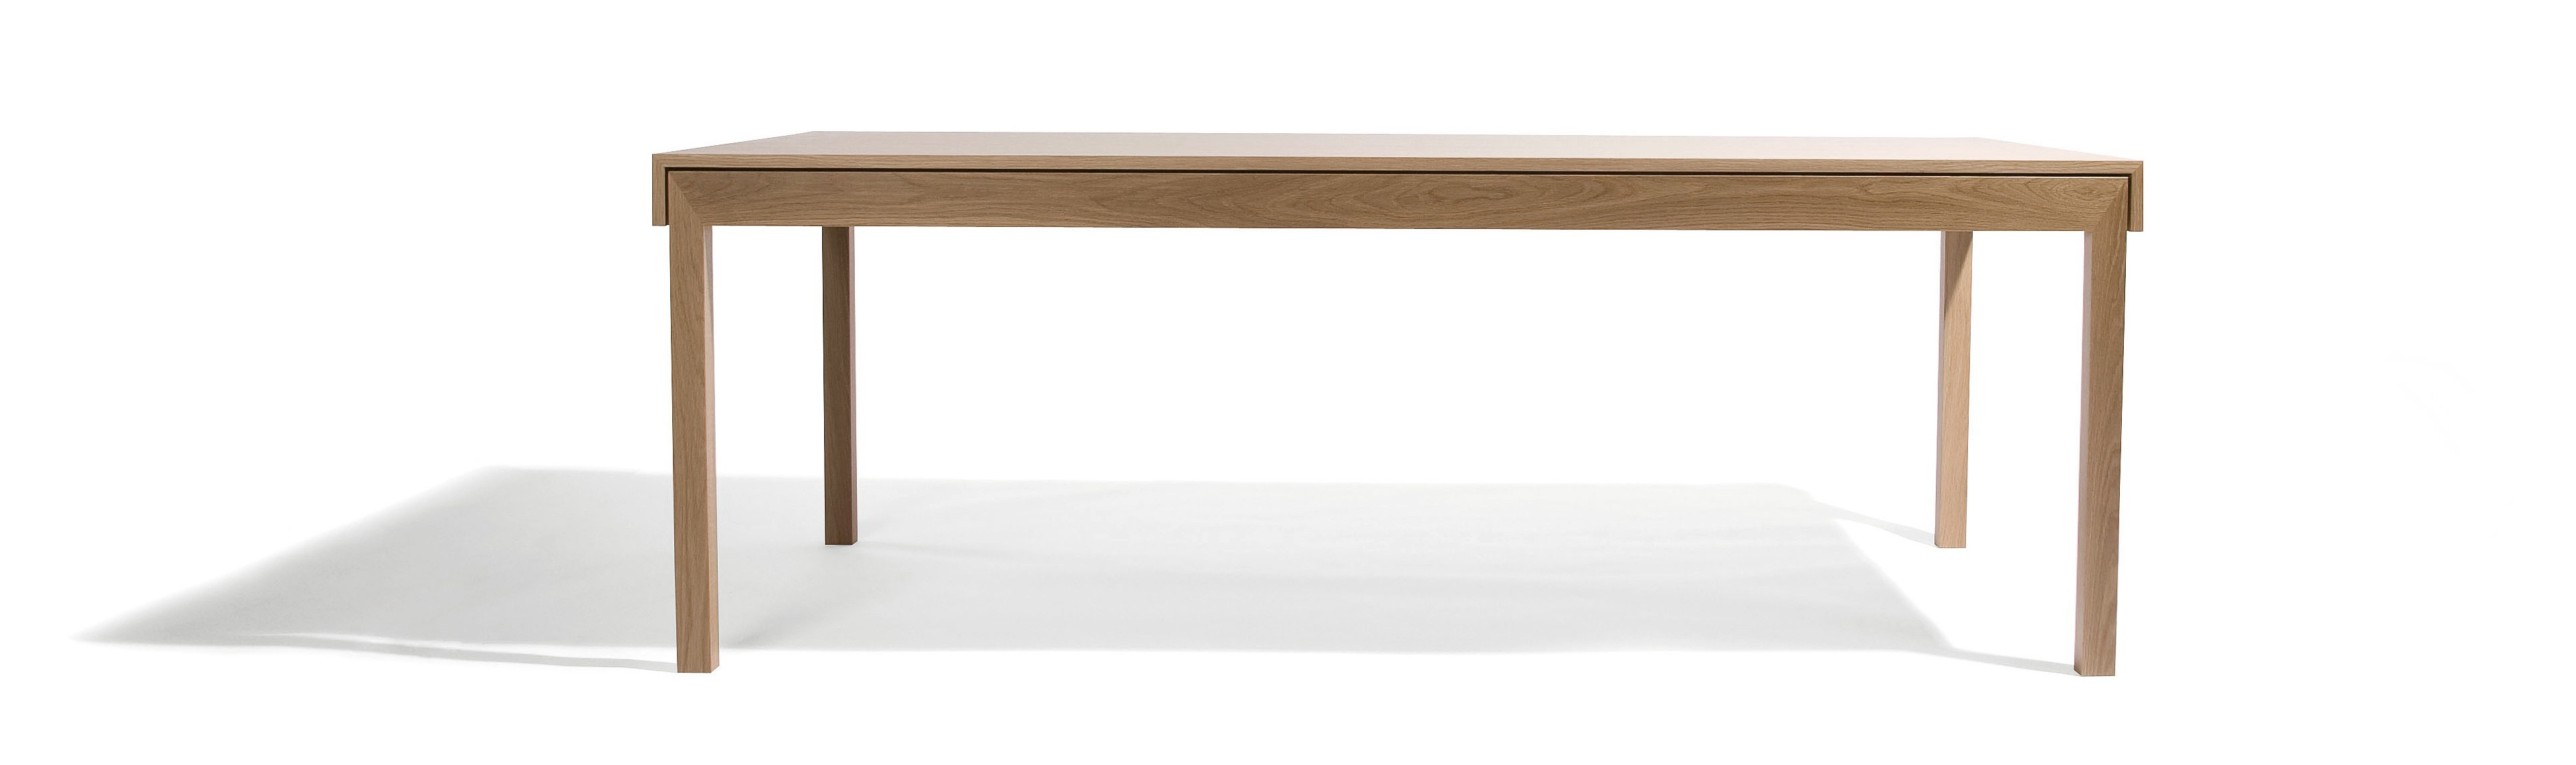 """L dining table: available in a variety of sizes and finishes that make it """"a versatile option for the home or workplace"""". Photo: © David Moreland Design"""